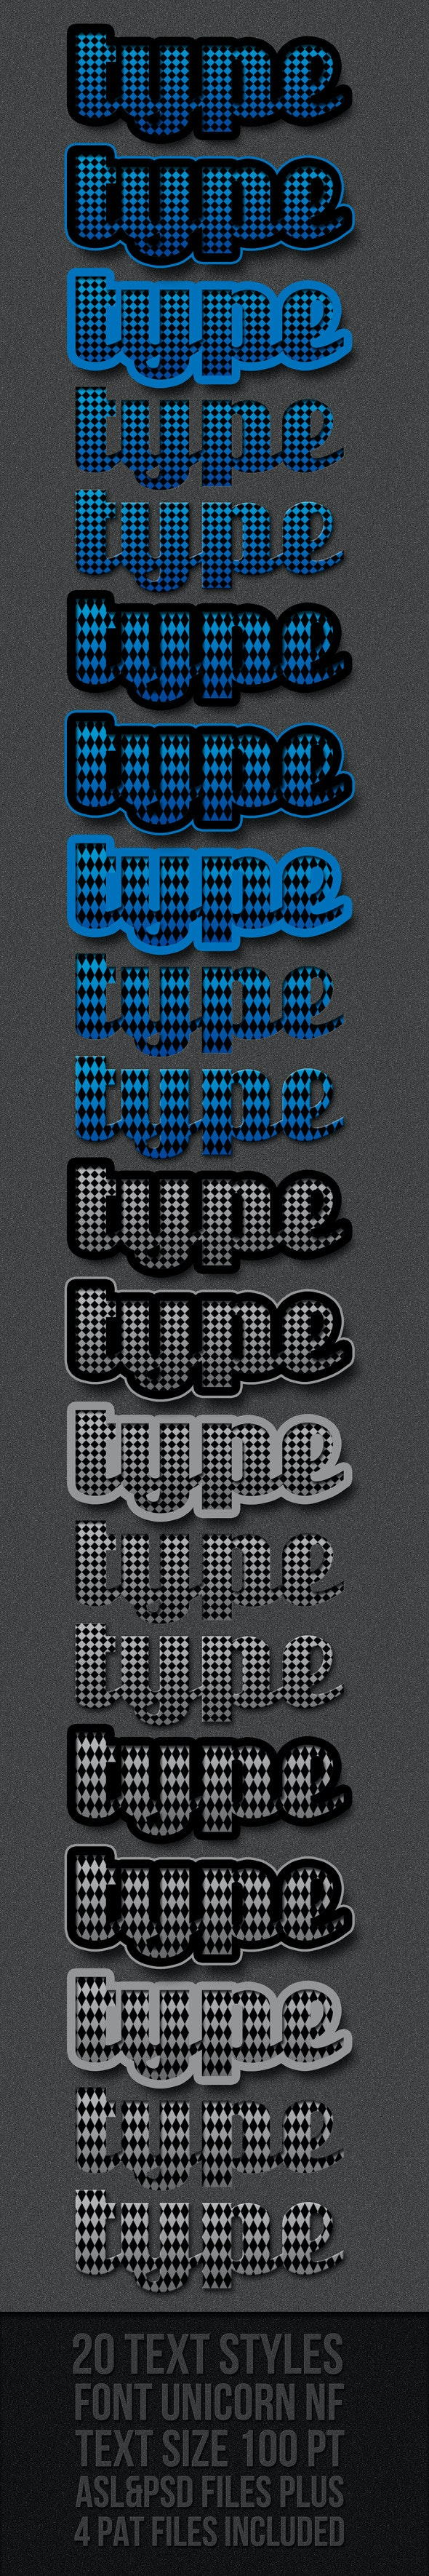 Romb Text Styles - Text Effects Styles